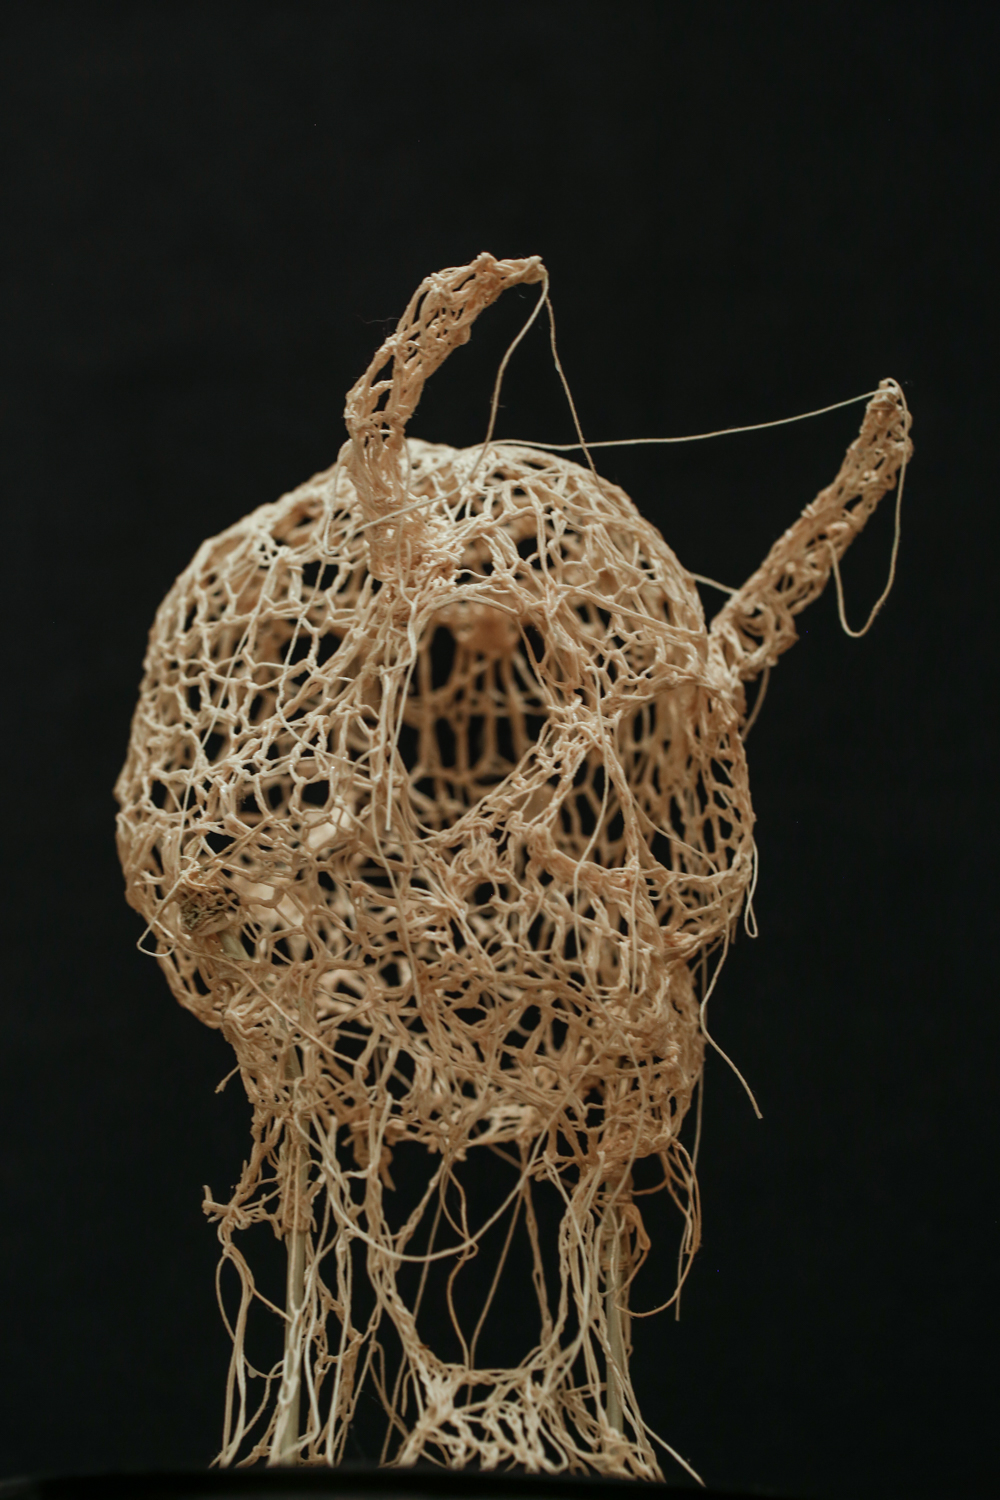 Caitlin McCormack is a fiber sculptor and illustrator. Her work primarily involves crocheted and stiffened cotton thread, which is positioned in the form of animal and humanoid skeletons, but she's currently trying out lots of new stuff. She has been based in Philadelphia for over ten years and receives representation from Paradigm Gallery + Studio.   website:    www.caitlintmccormack.com